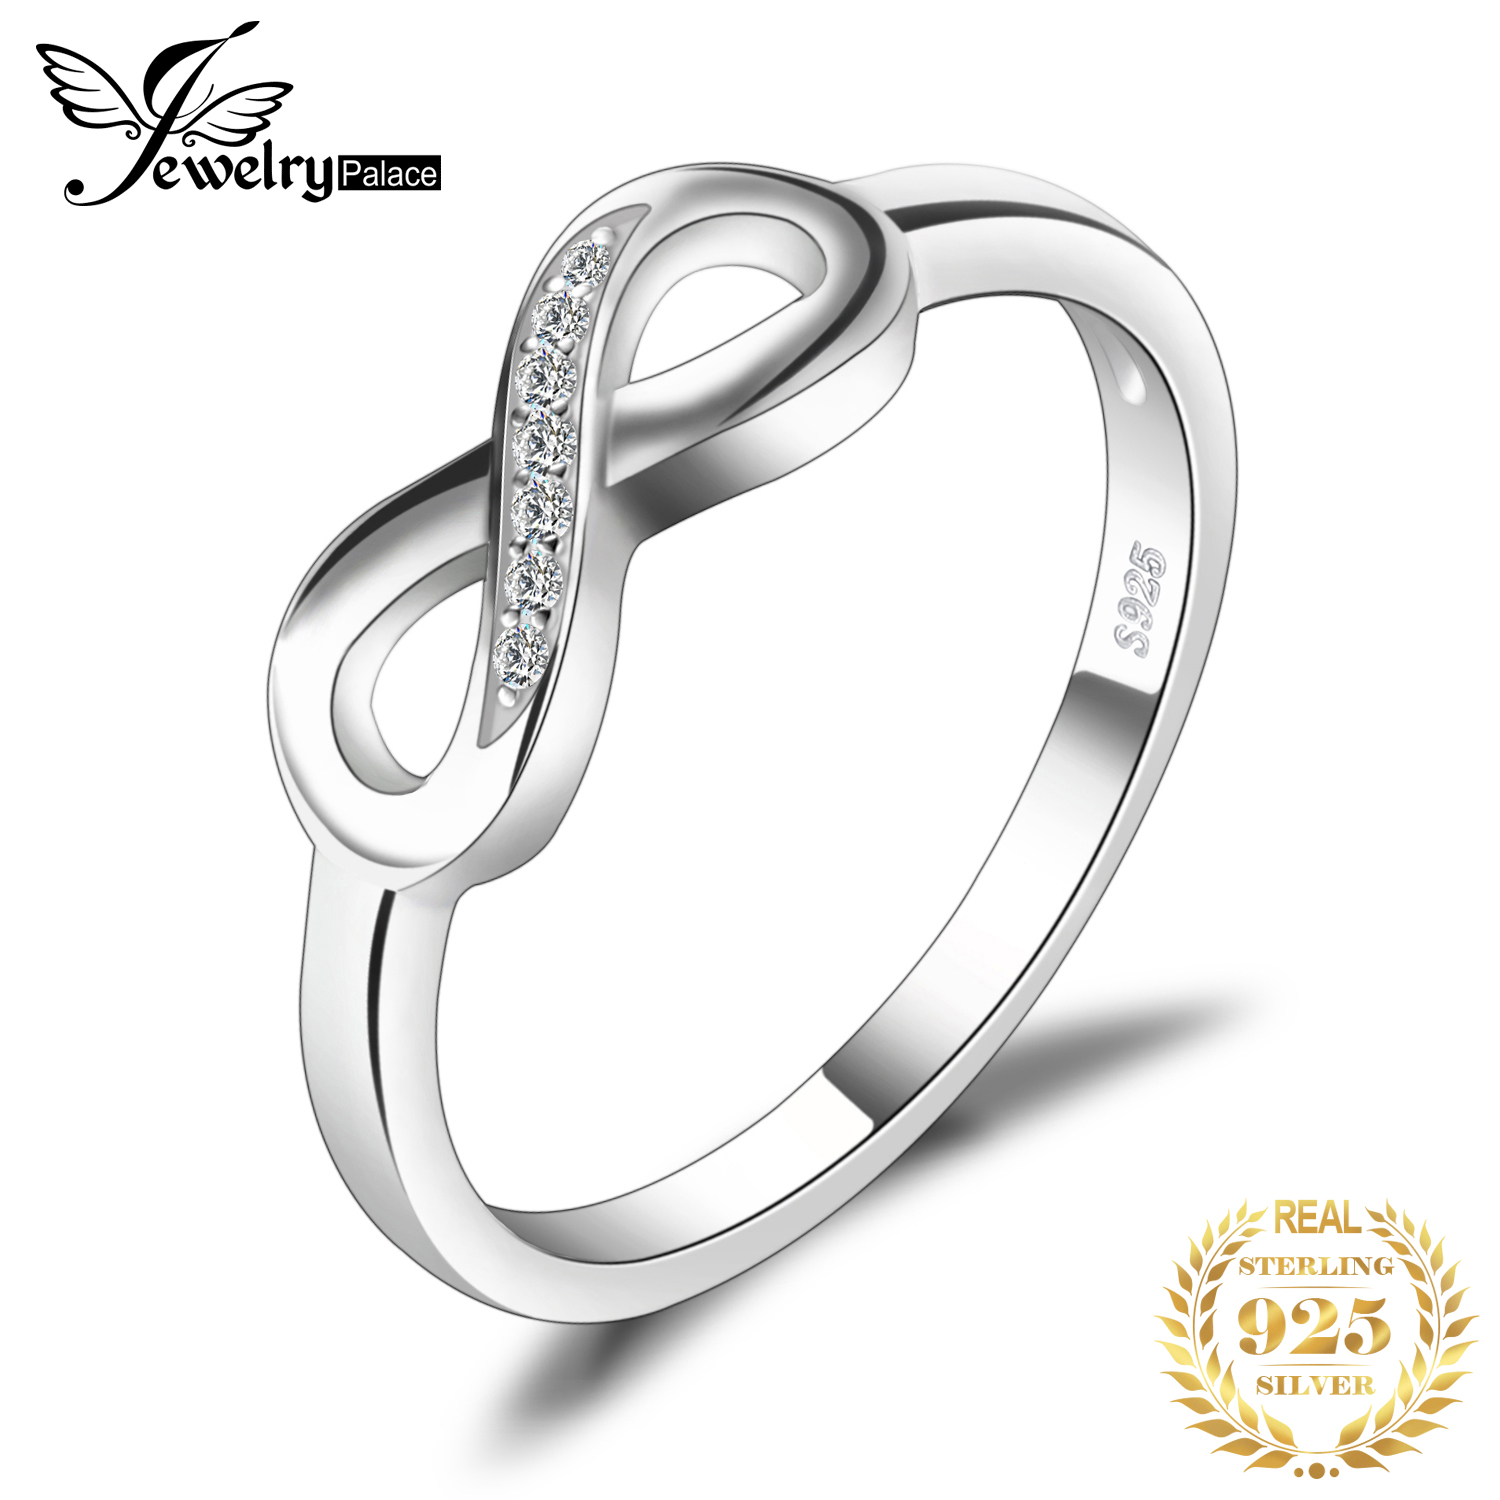 JewelryPalace Infinity Anniversary Cubic Zirconia Rings 925 Sterling Silver Rings For Women Silver 925 Jewelry Fine Jewelry